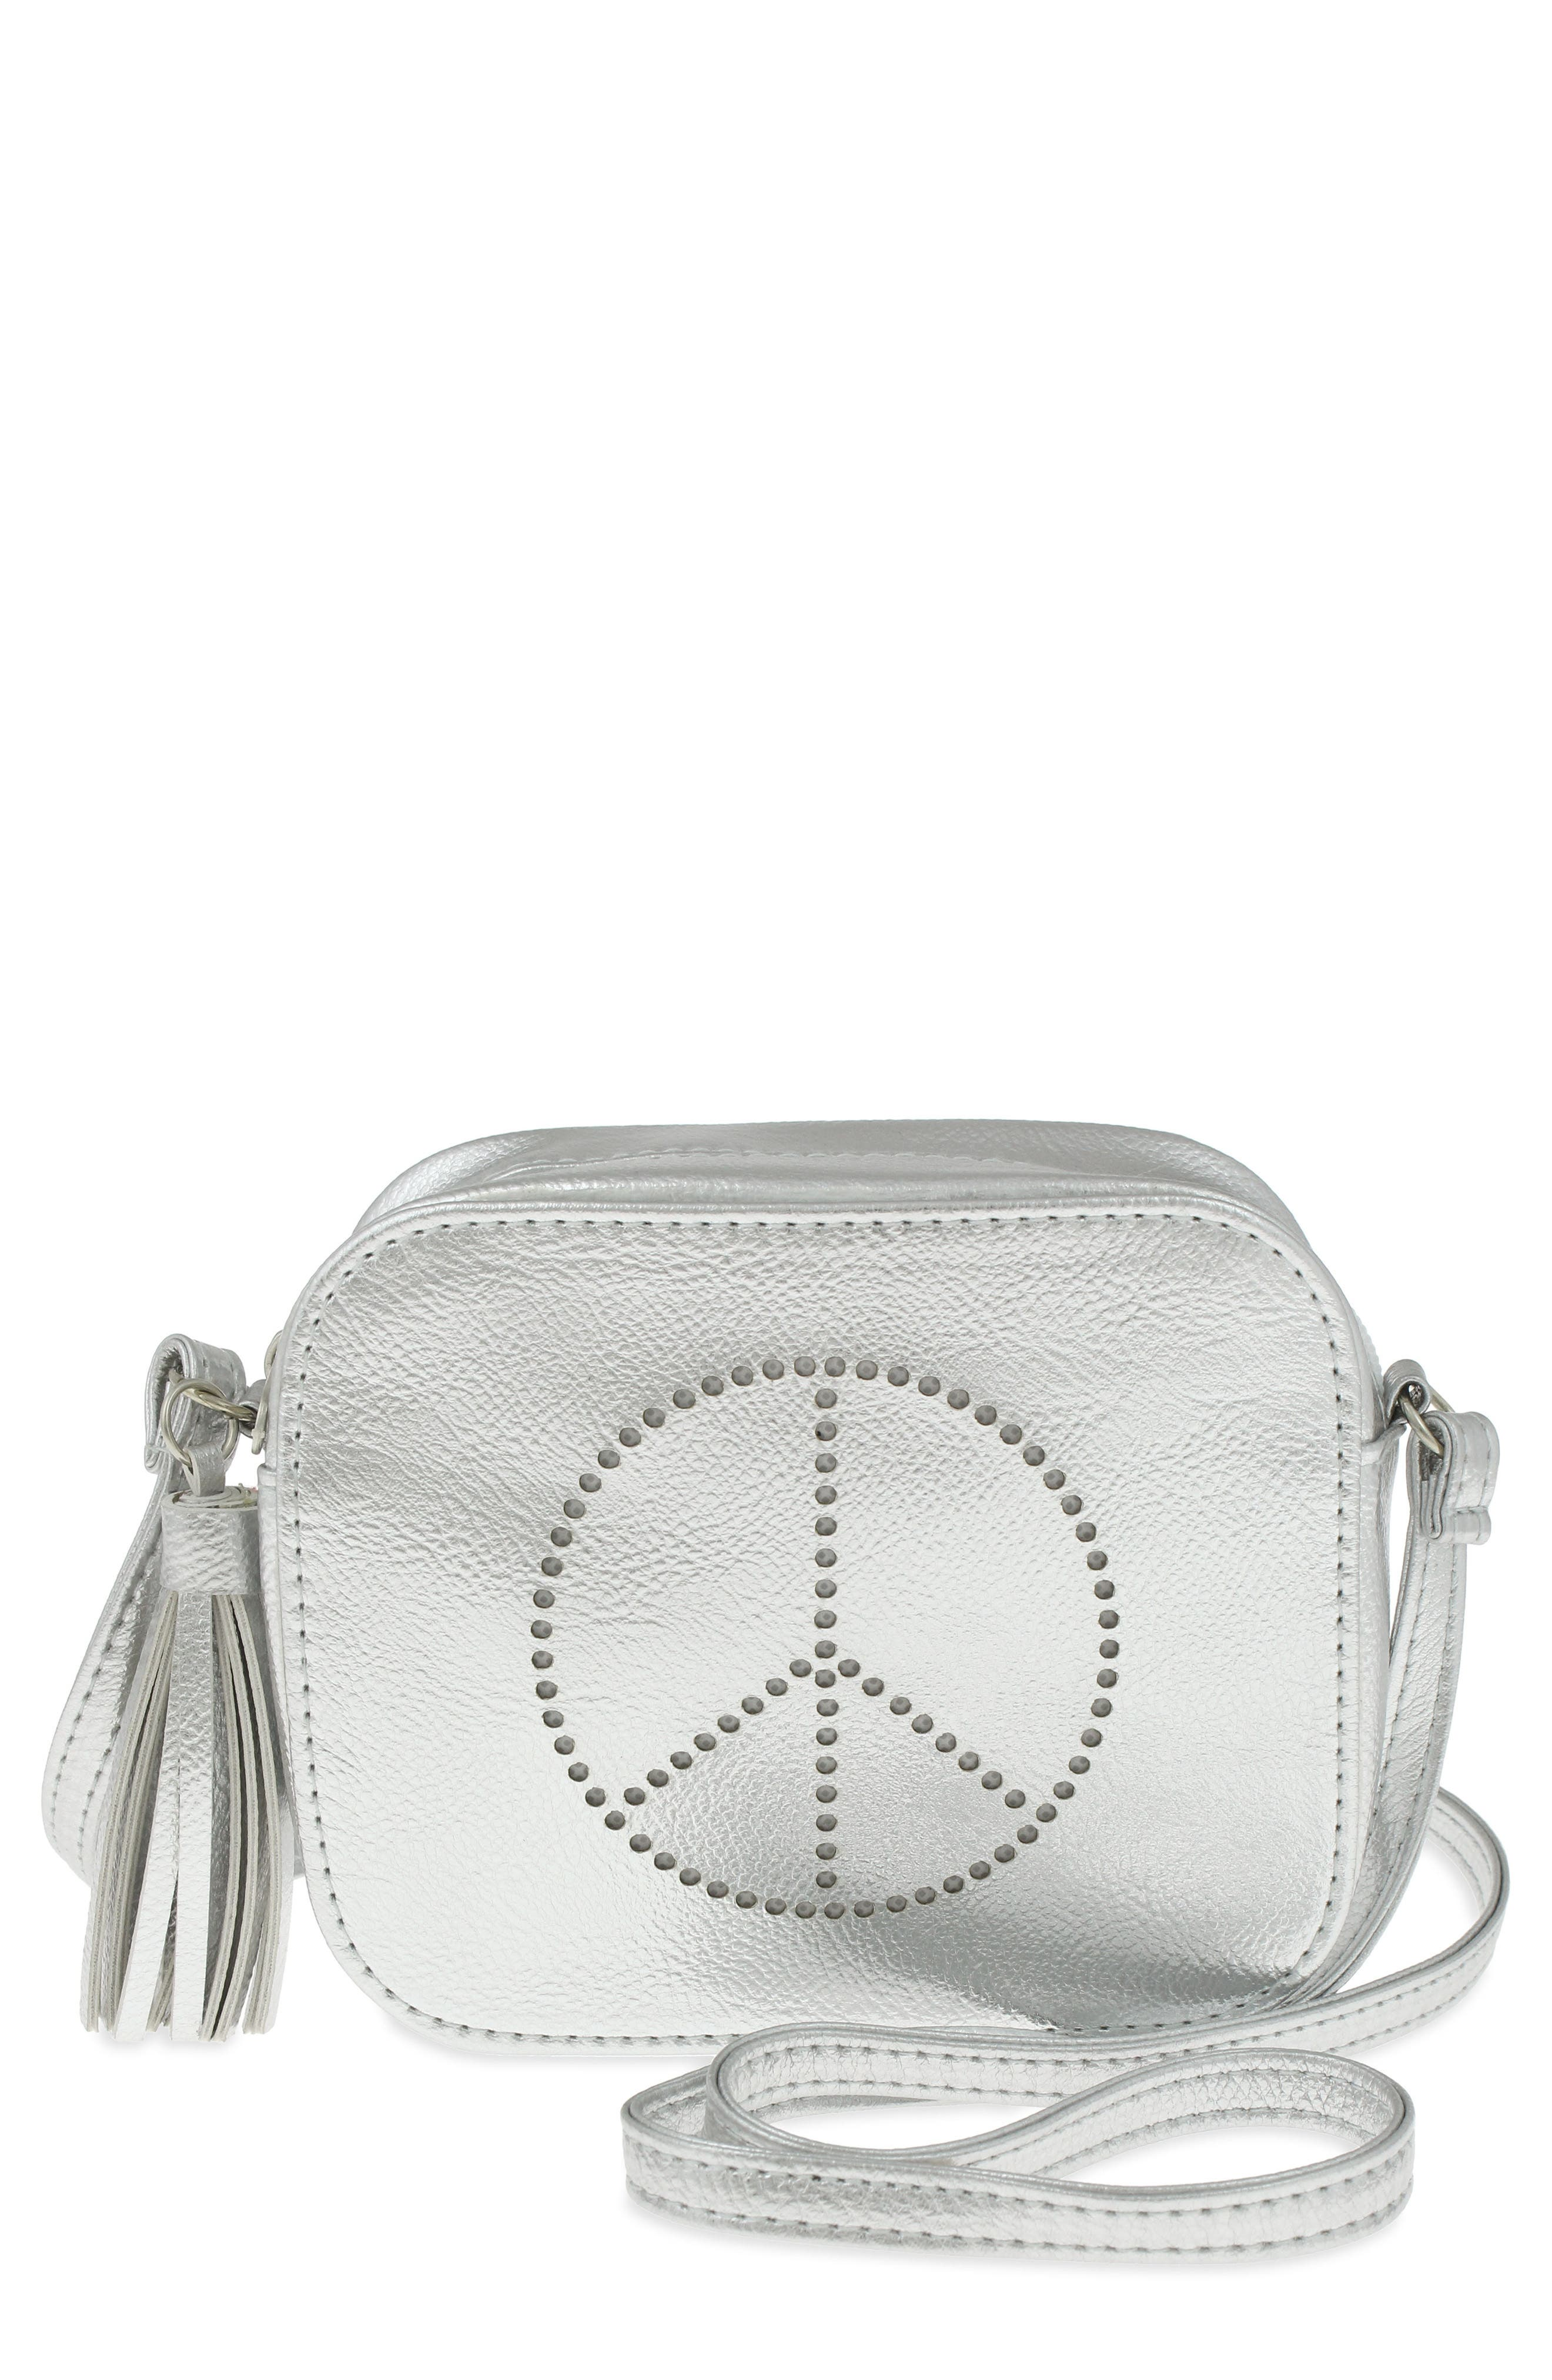 Alternate Image 1 Selected - Capelli New York Peace Sign Faux Leather Crossbody Bag (Girls)